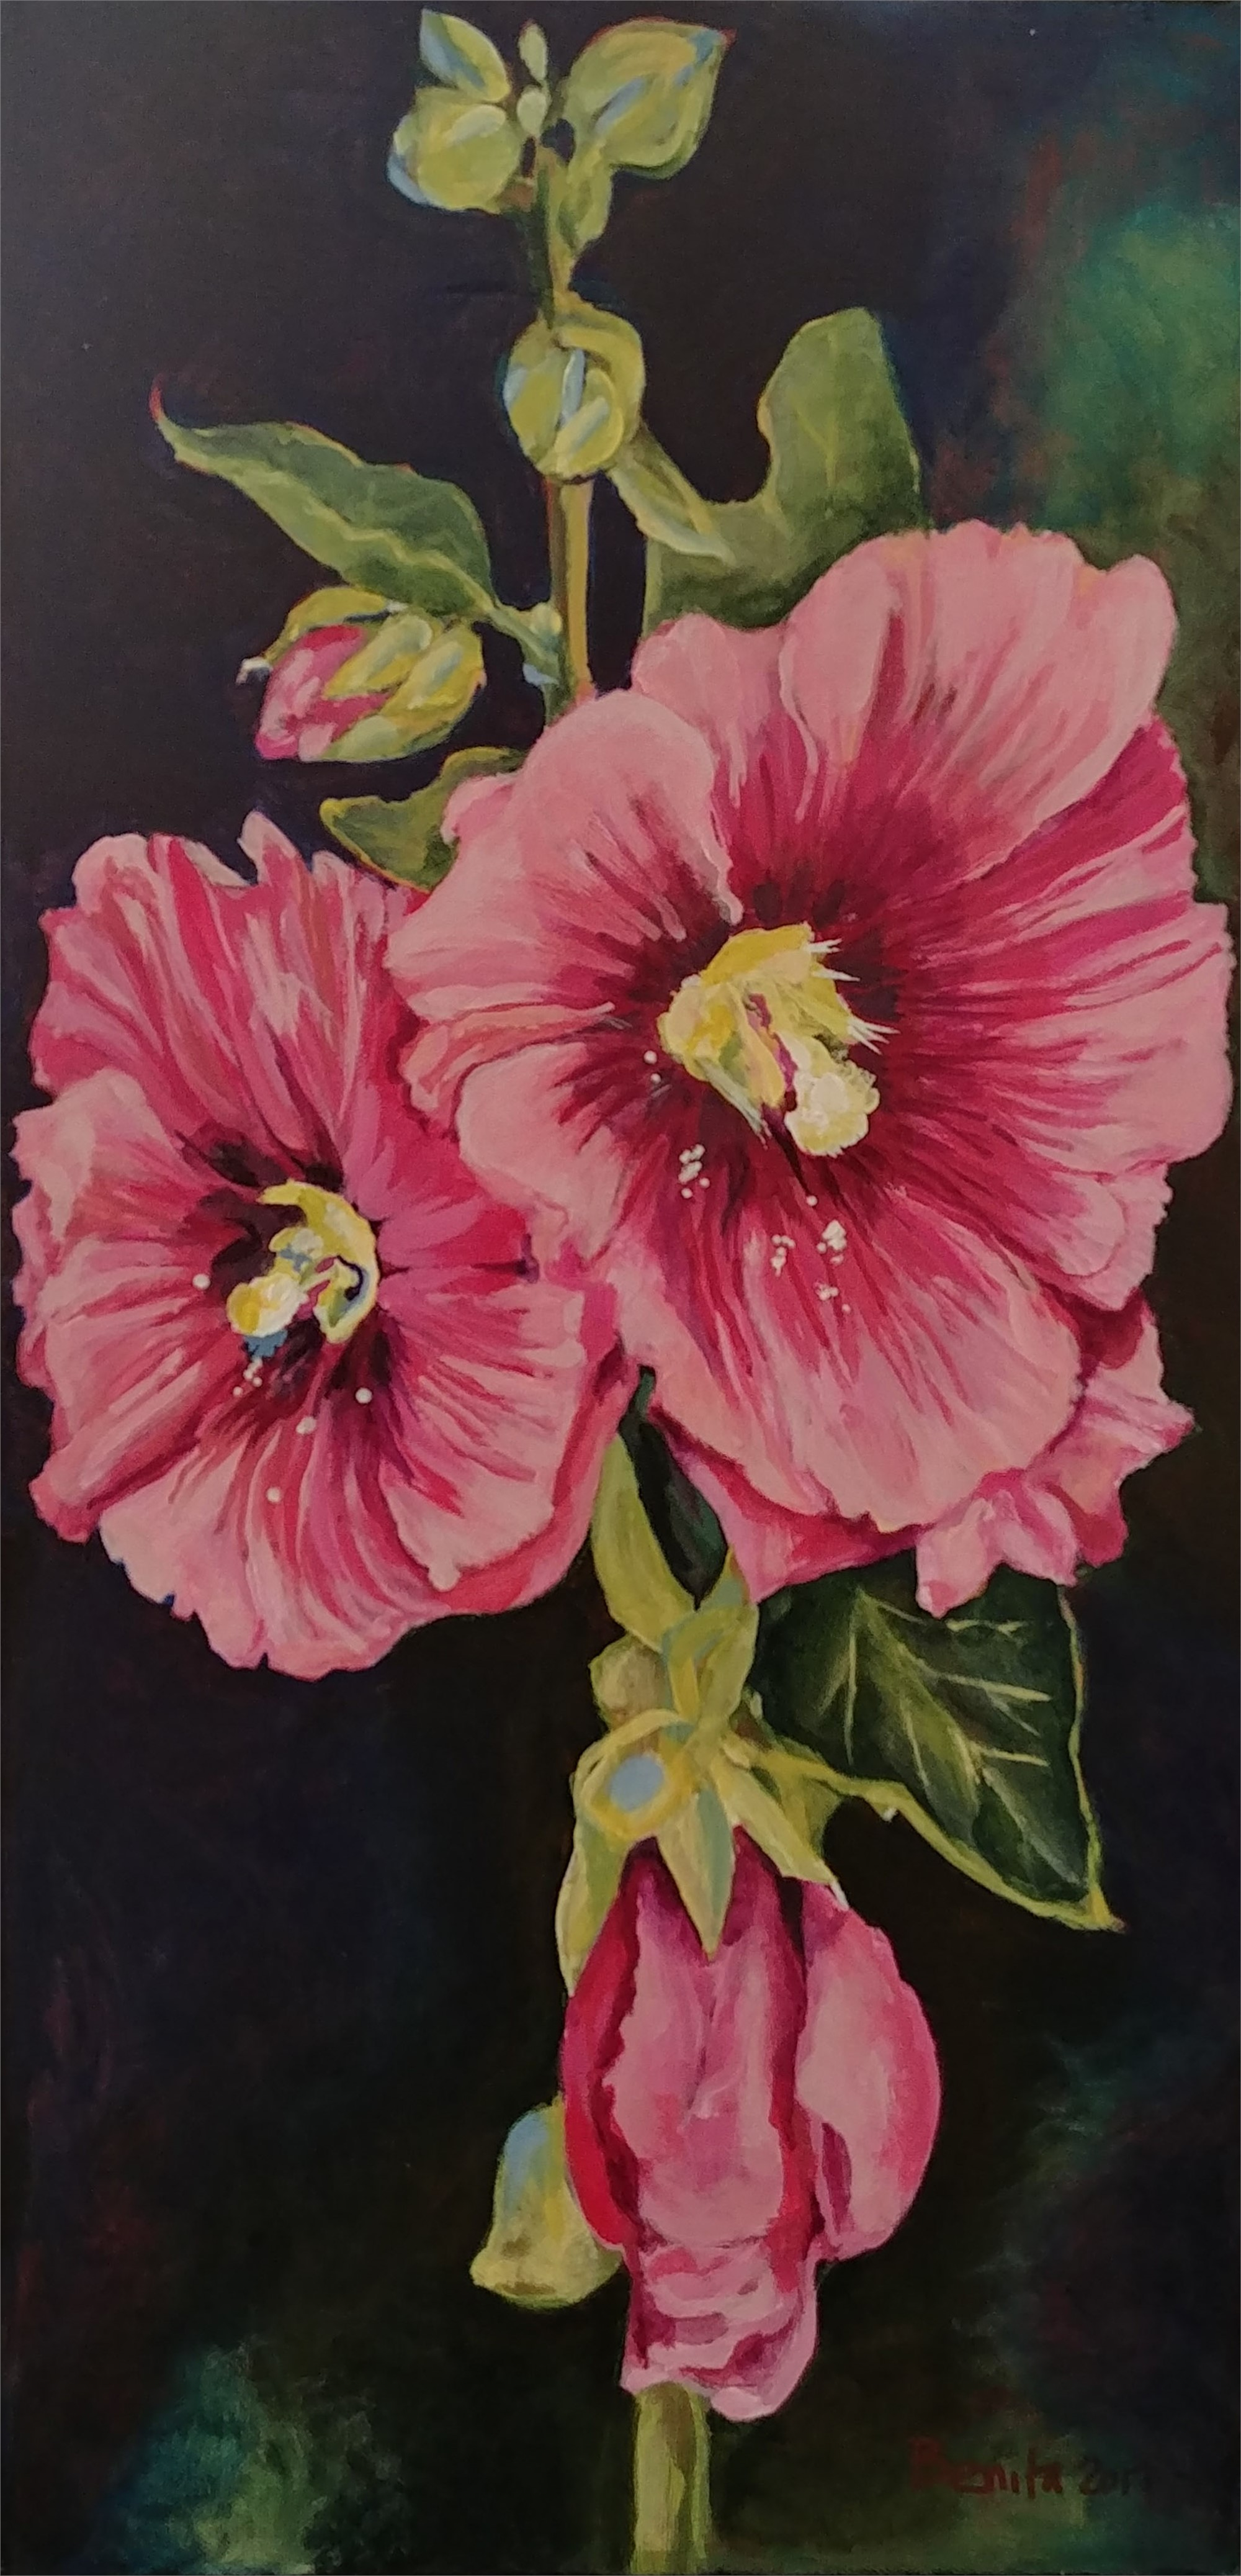 Tall Hollyhock by Benita Cole (McMinnville, OR)